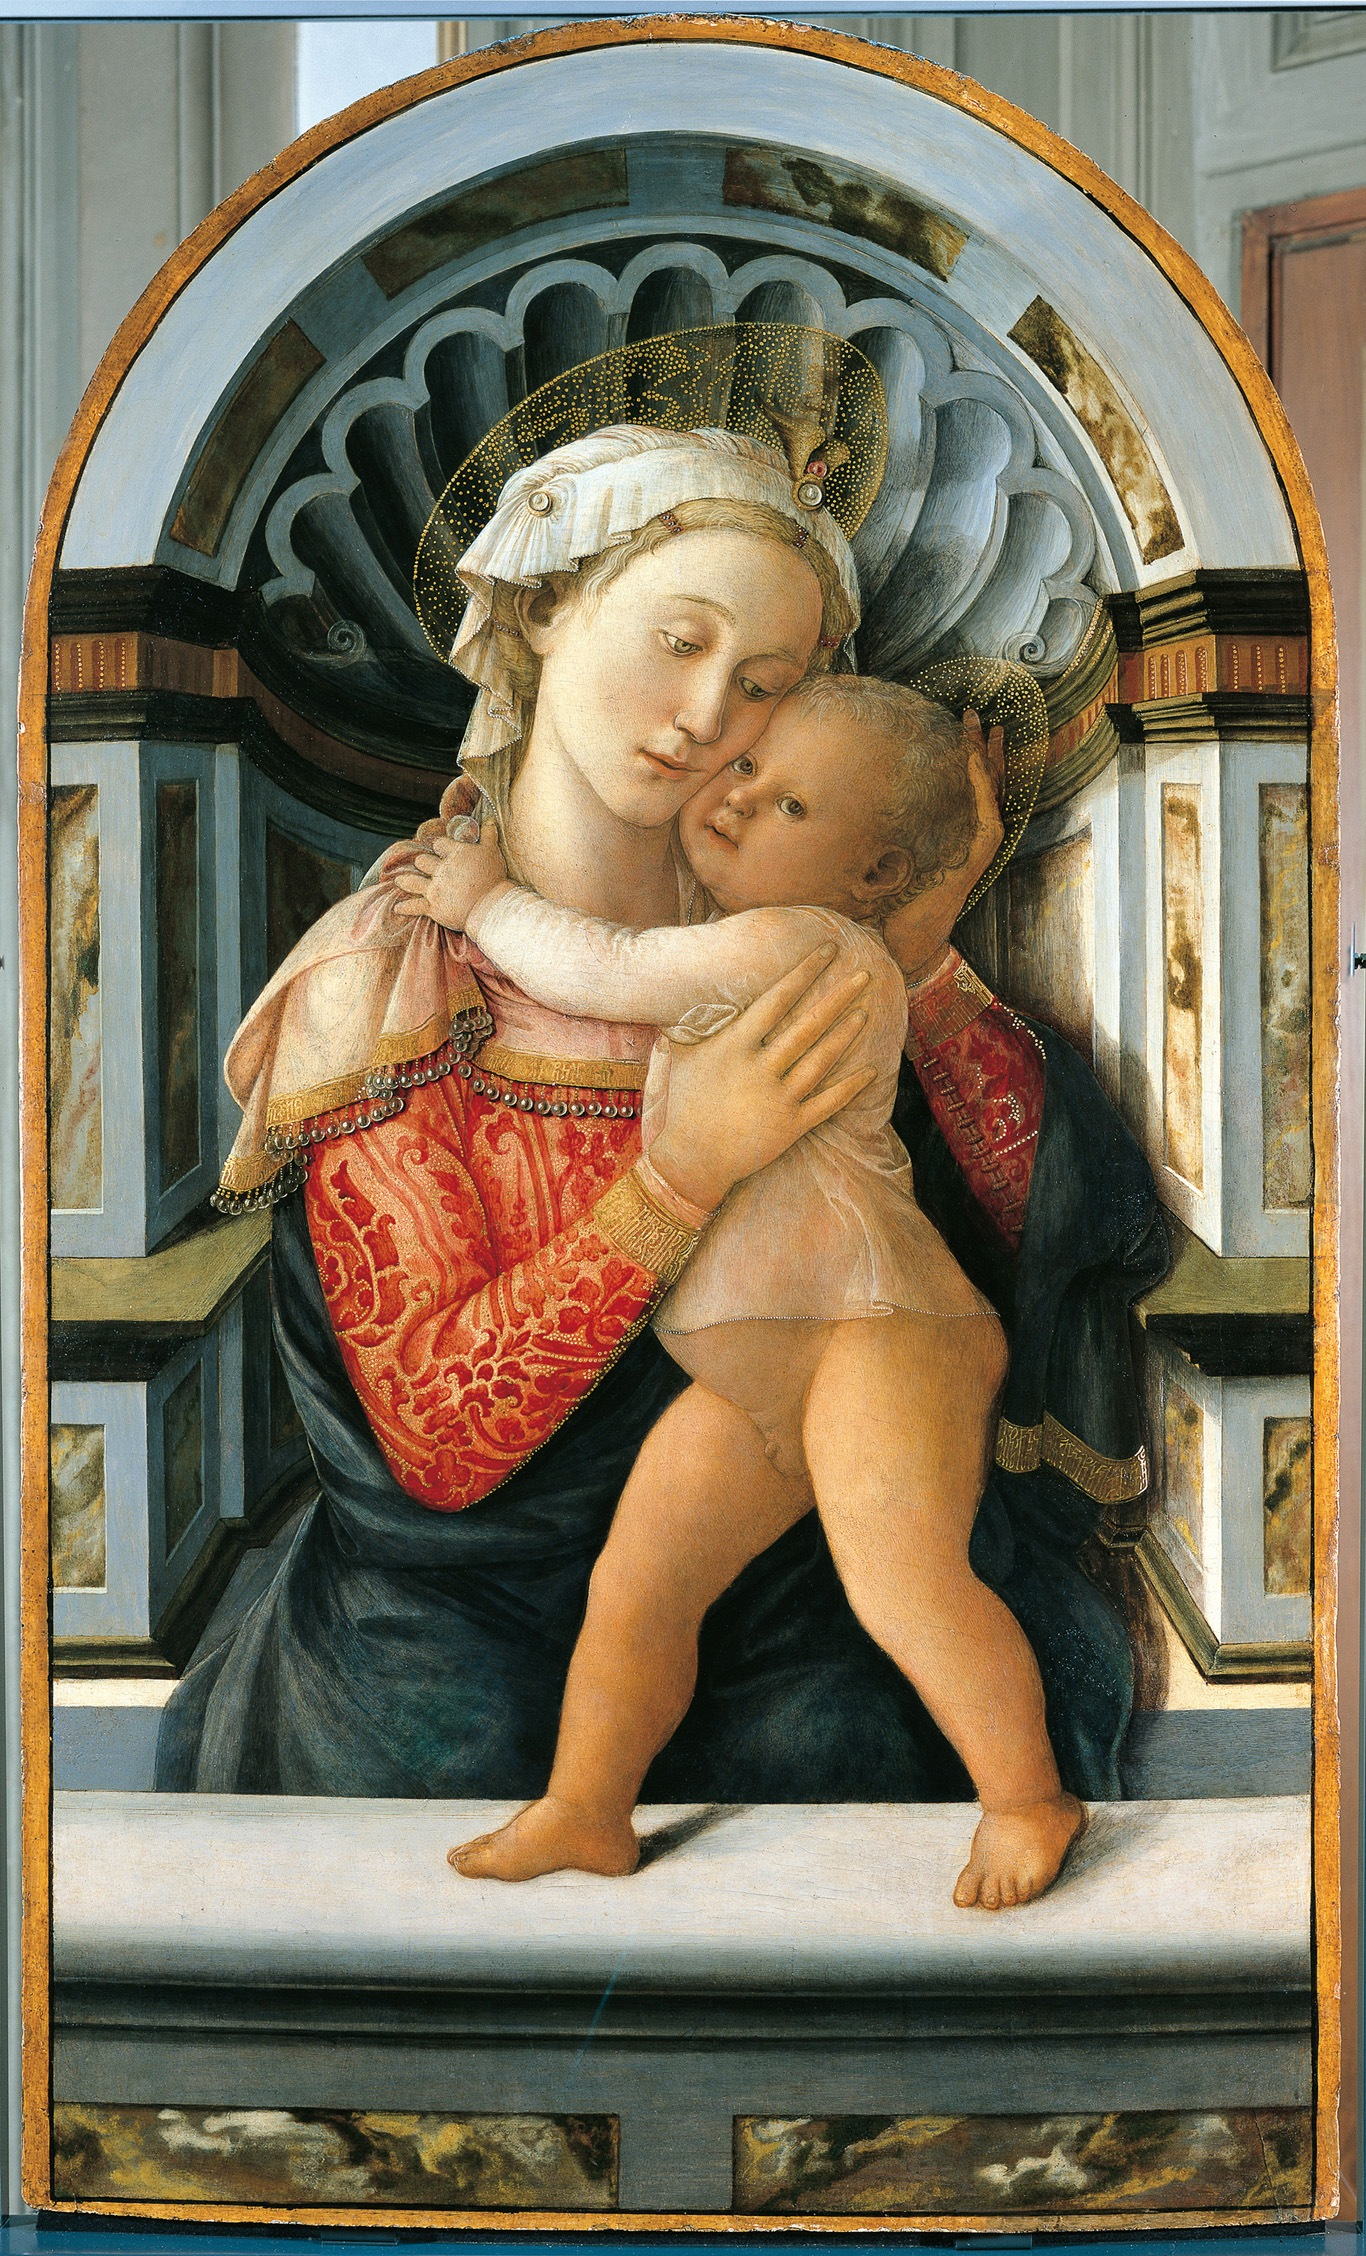 Madonna and Child by Filippo Lippi, tempera on wood, 1466. Currently in the collections of the Museo Poldi Pezzoli, Milan, Italy.